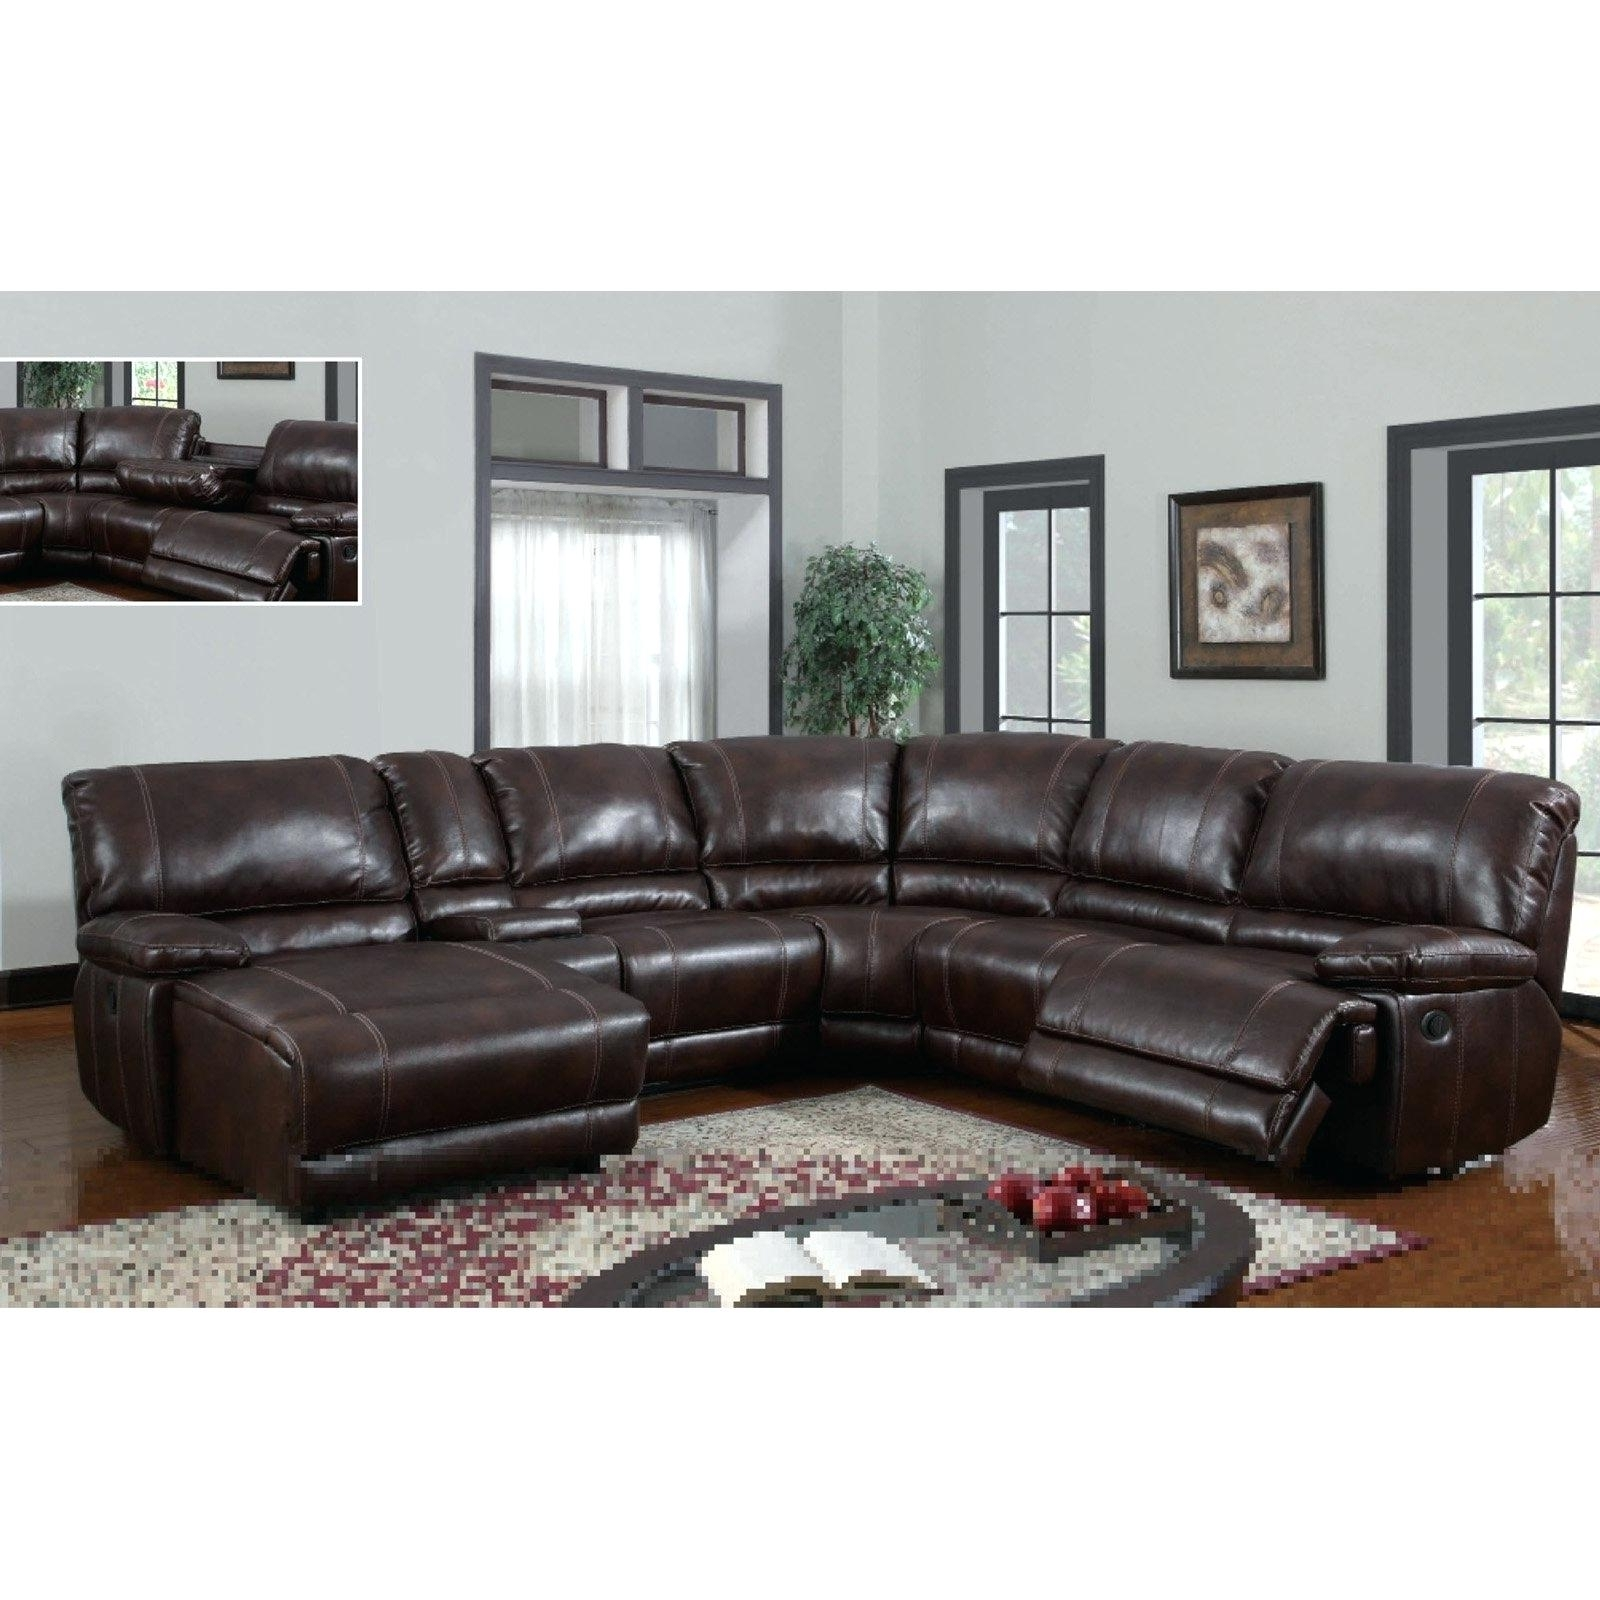 Newest Large 4 Seater Sofas With Regard To Furniture : 4 Seater Sofa Sale Big Sofa Universal 3 Seater Sofa (View 11 of 15)